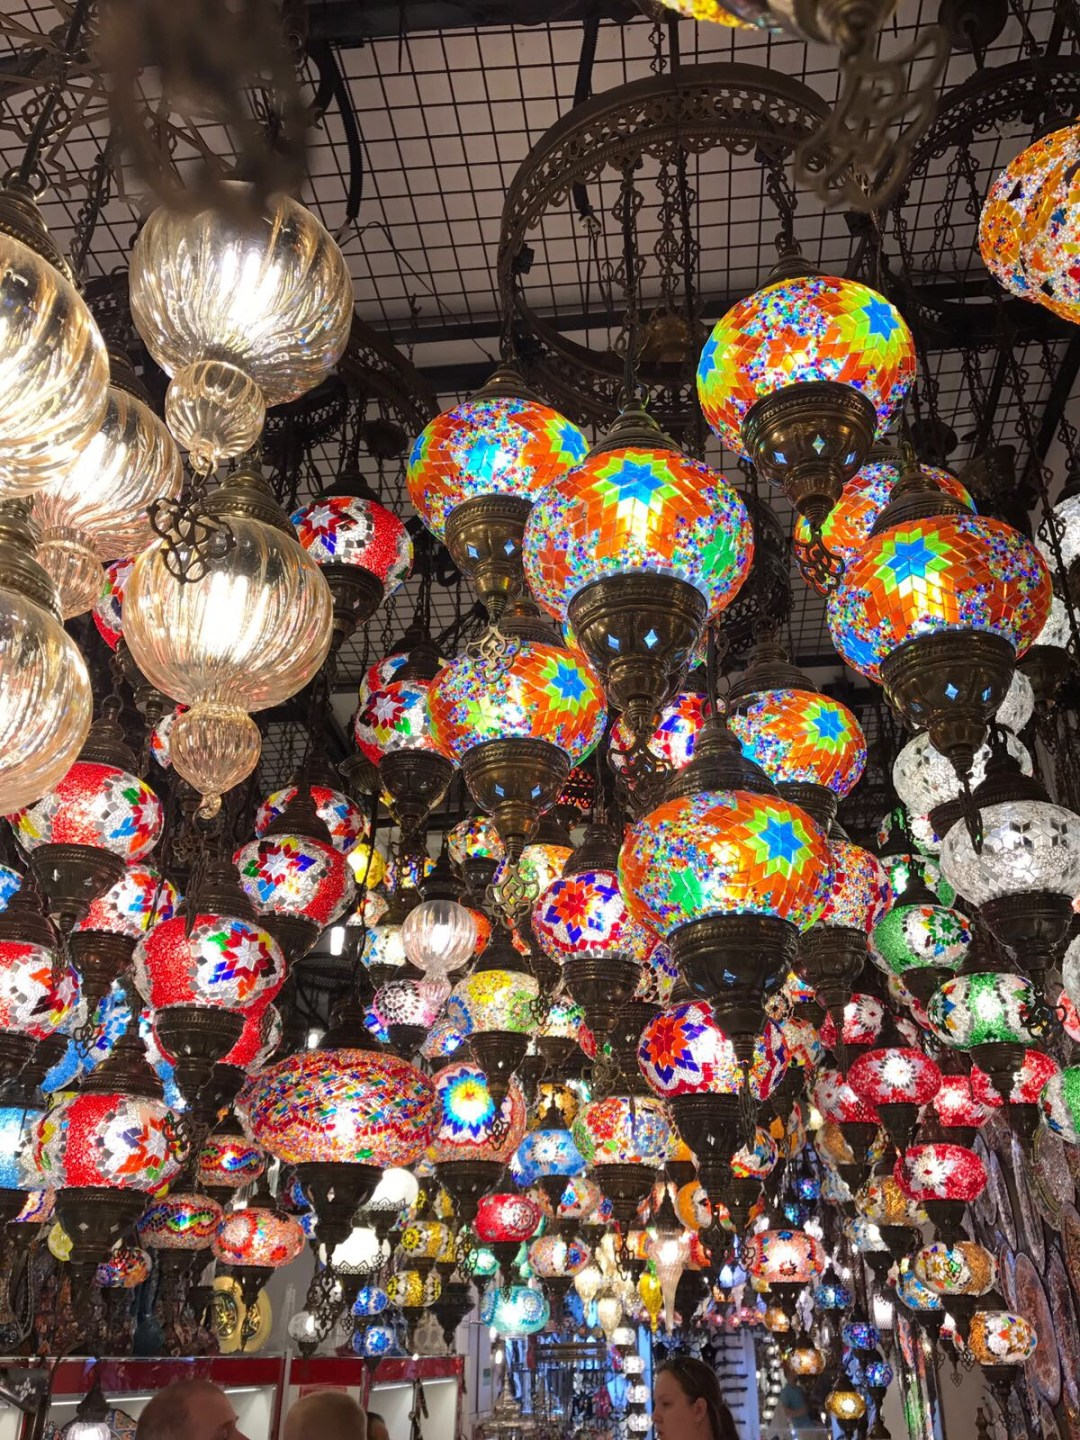 Colourful lanterns in a Souk in Old Town Dubai